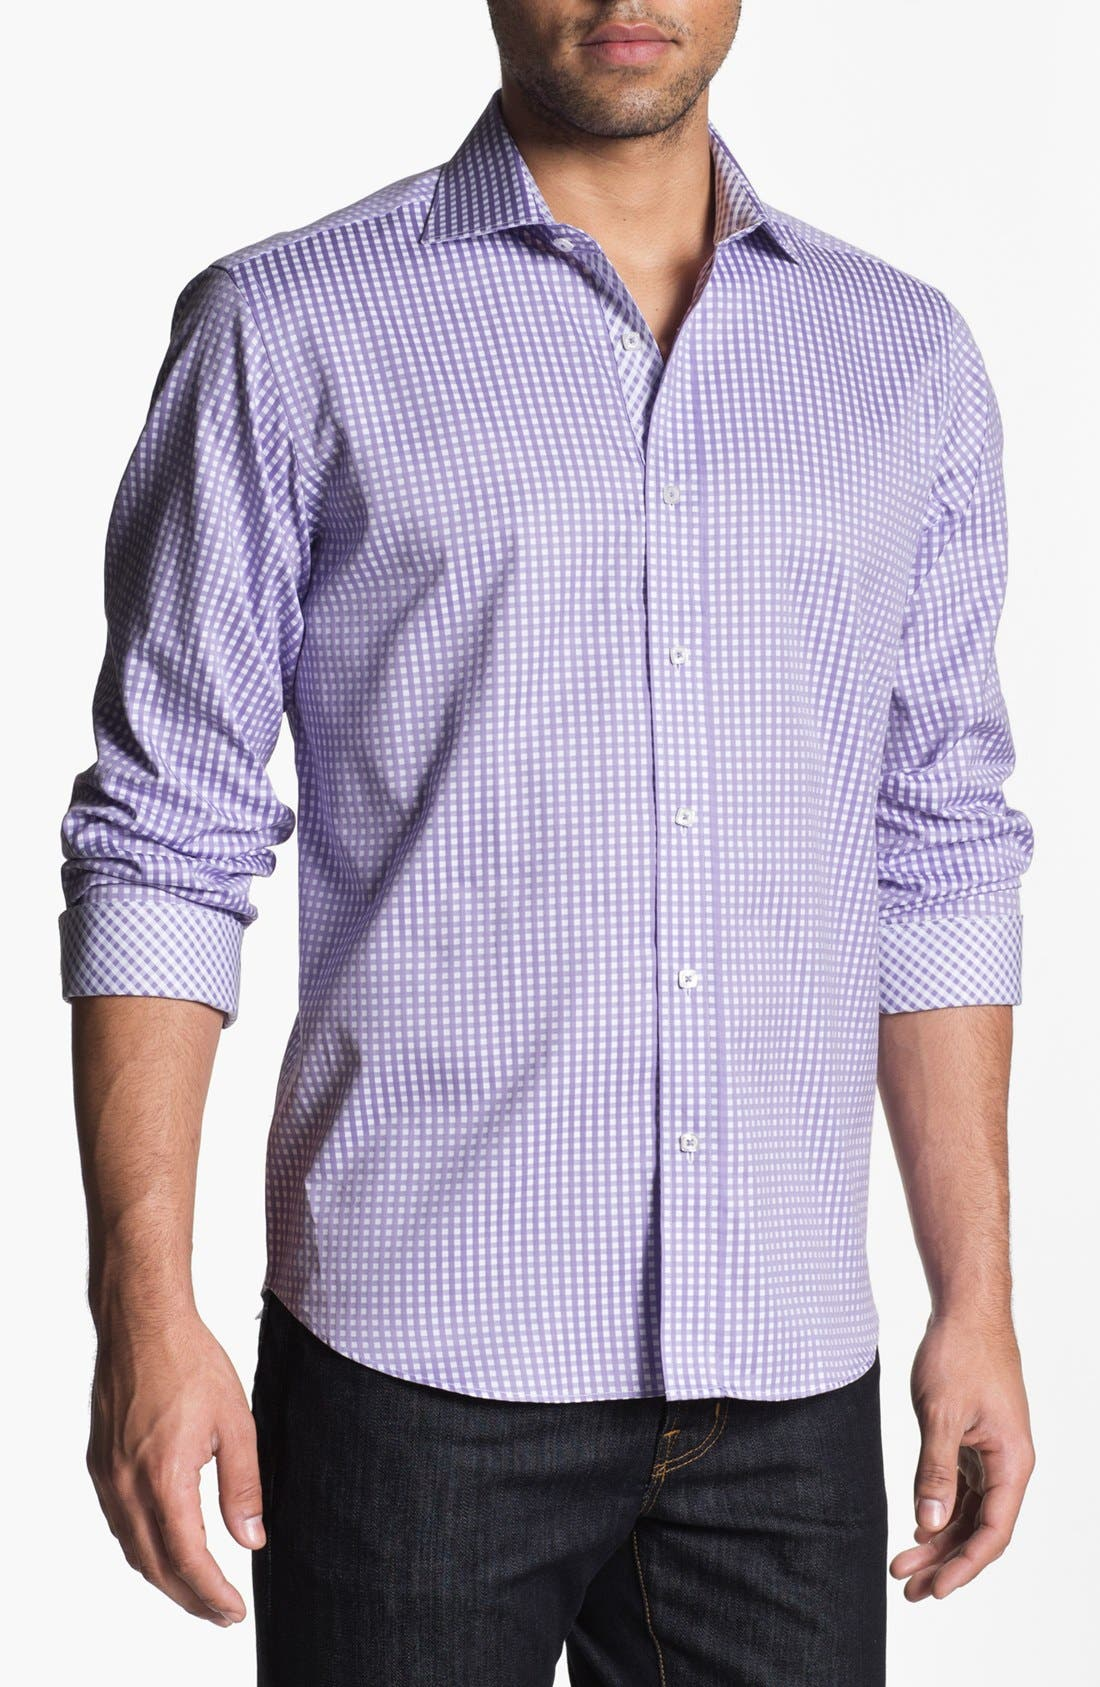 Alternate Image 1 Selected - Bugatchi Gingham Classic Fit Cotton Sport Shirt